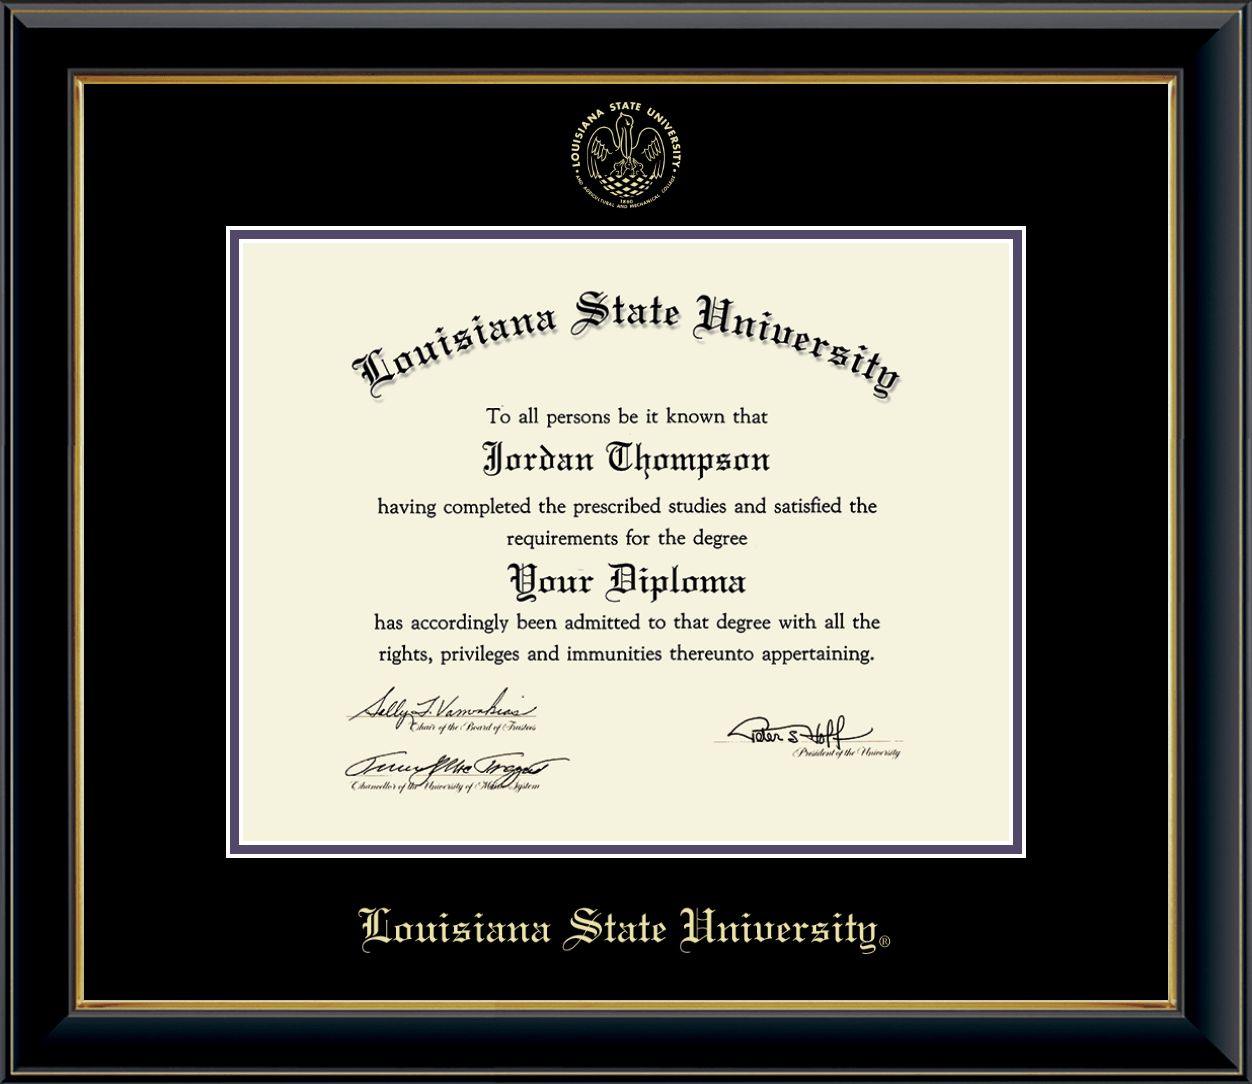 XULA diploma frame Xavier University of Louisiana certificate framing graduation document plaque XULA degree gift college picture campus